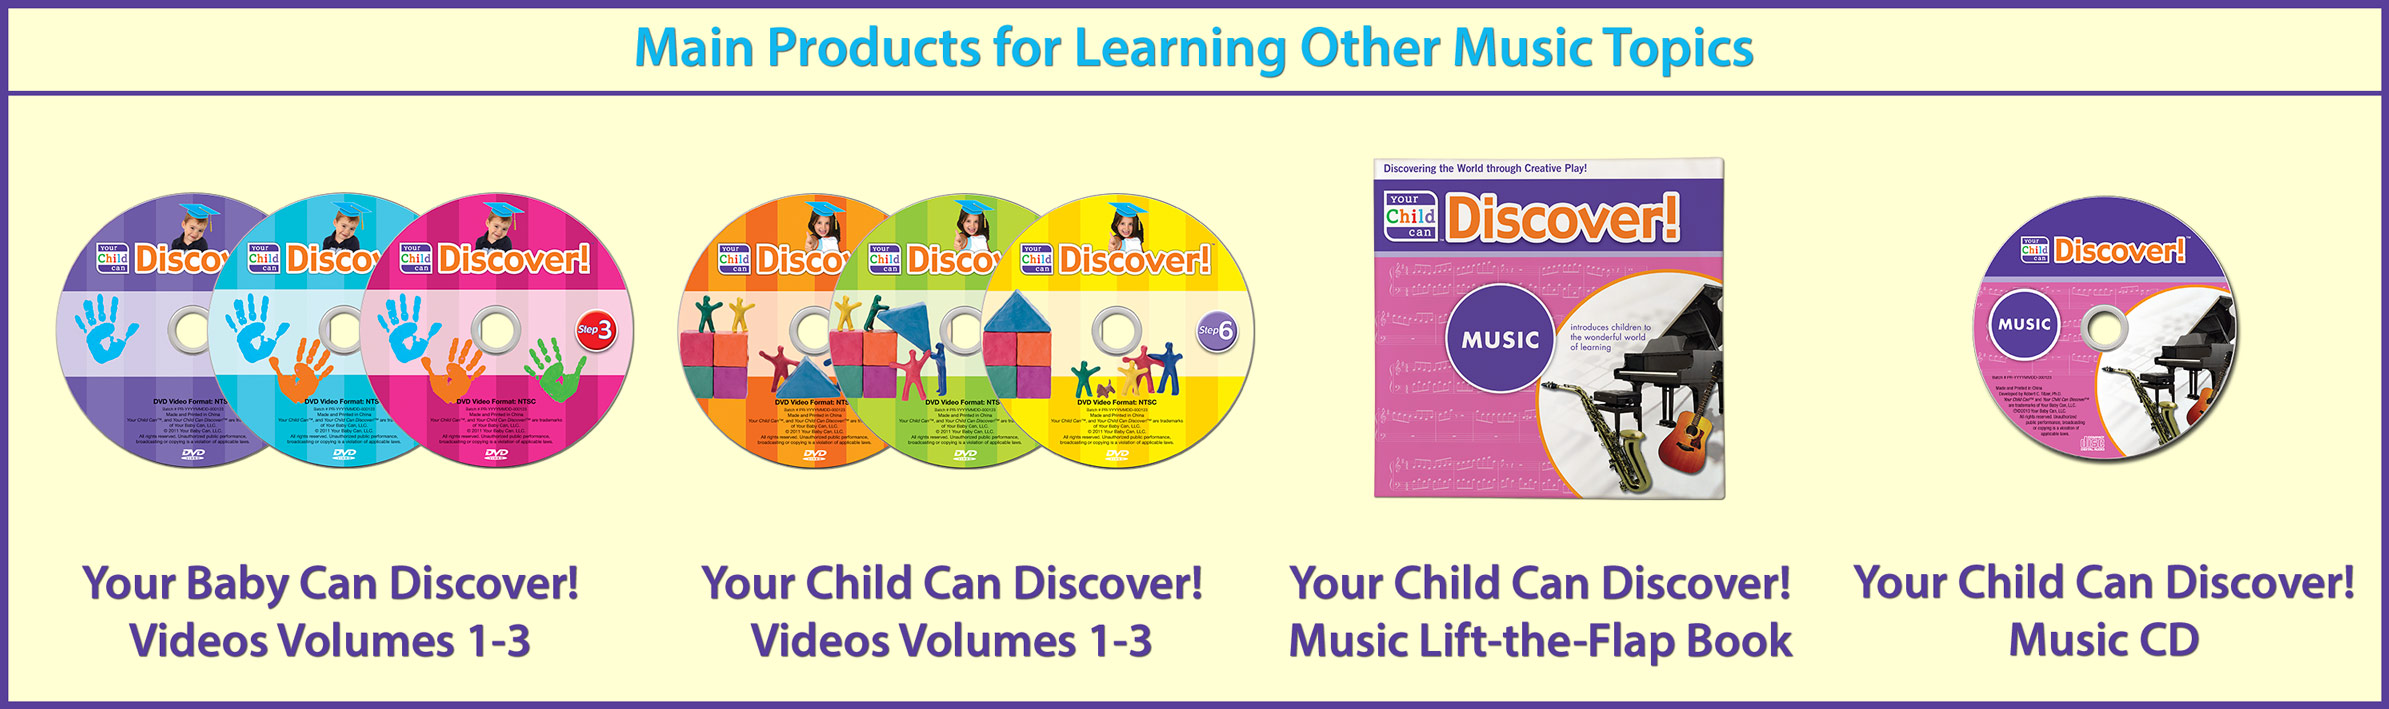 Main Products for Learning Other Music Topics